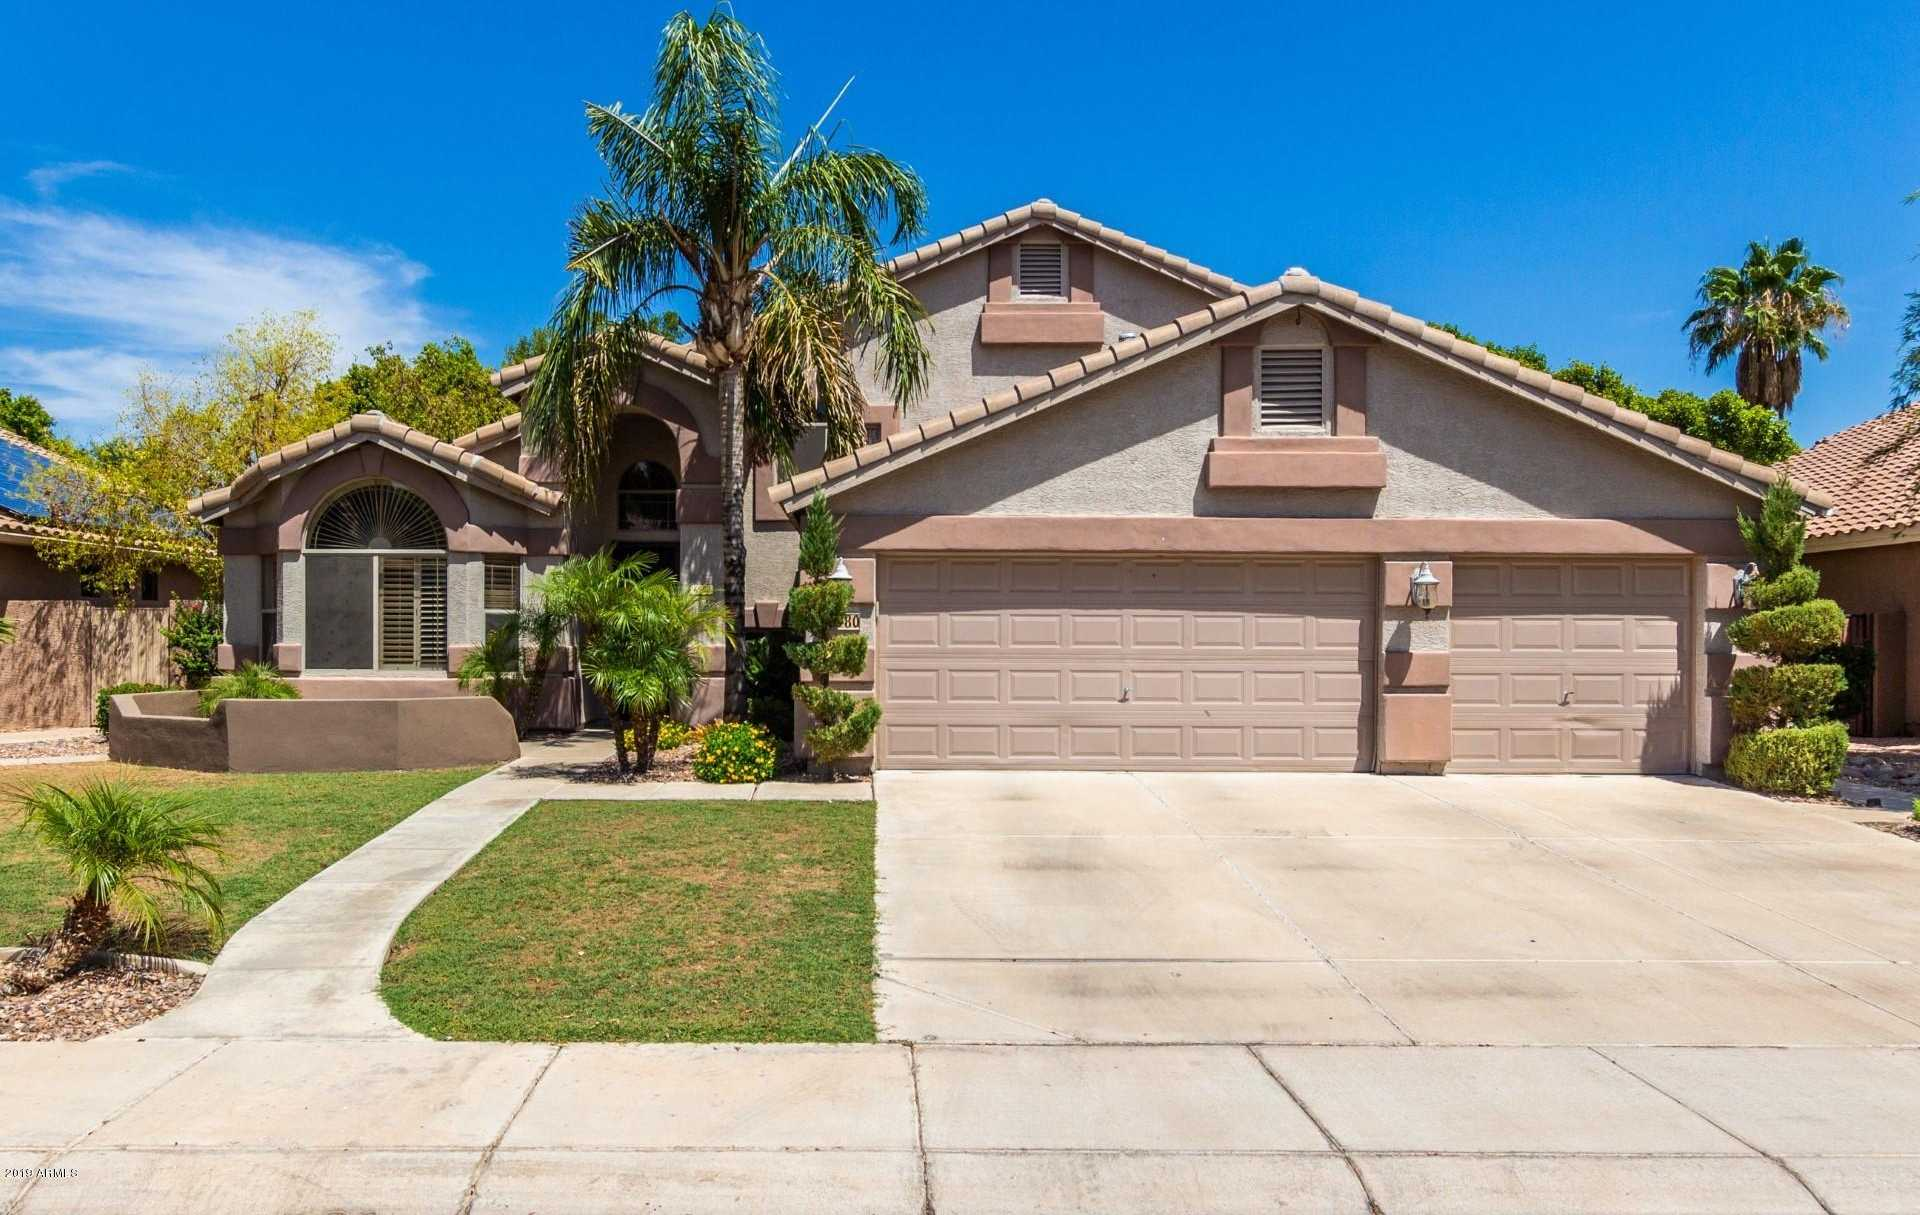 $485,000 - 5Br/3Ba - Home for Sale in Diamante Vista, Glendale